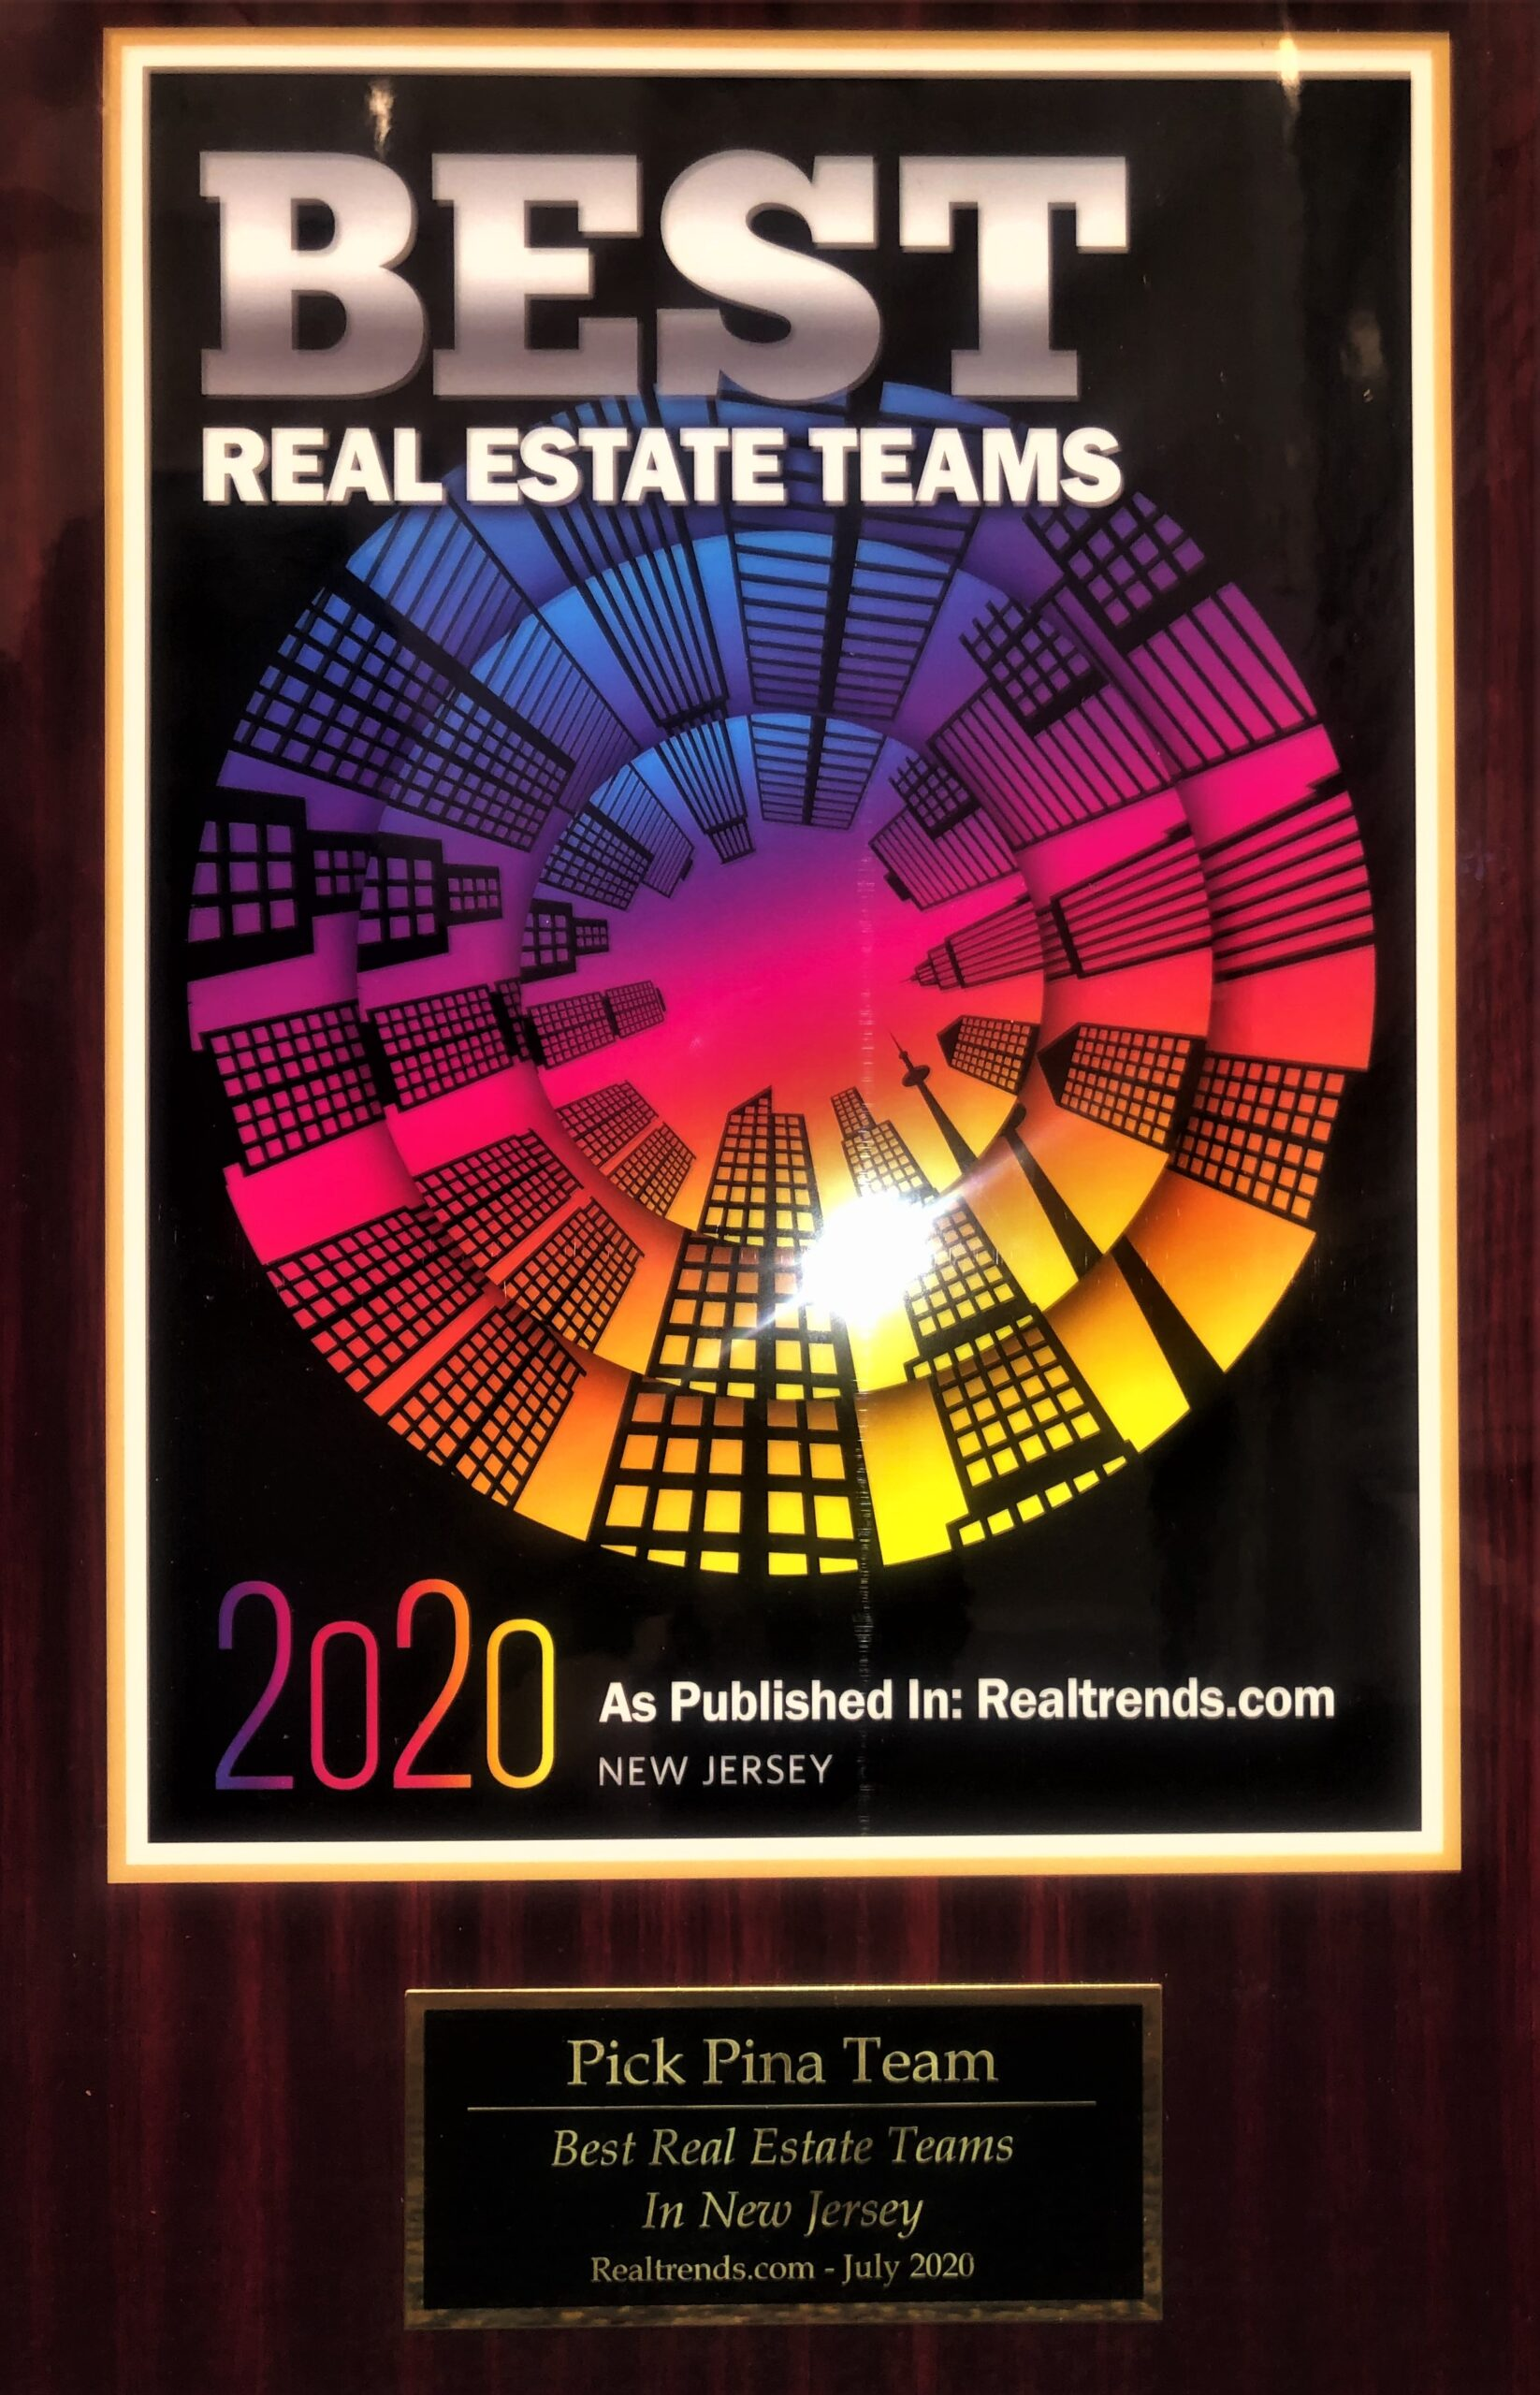 Best Real Estate Teams in New Jersey 2020